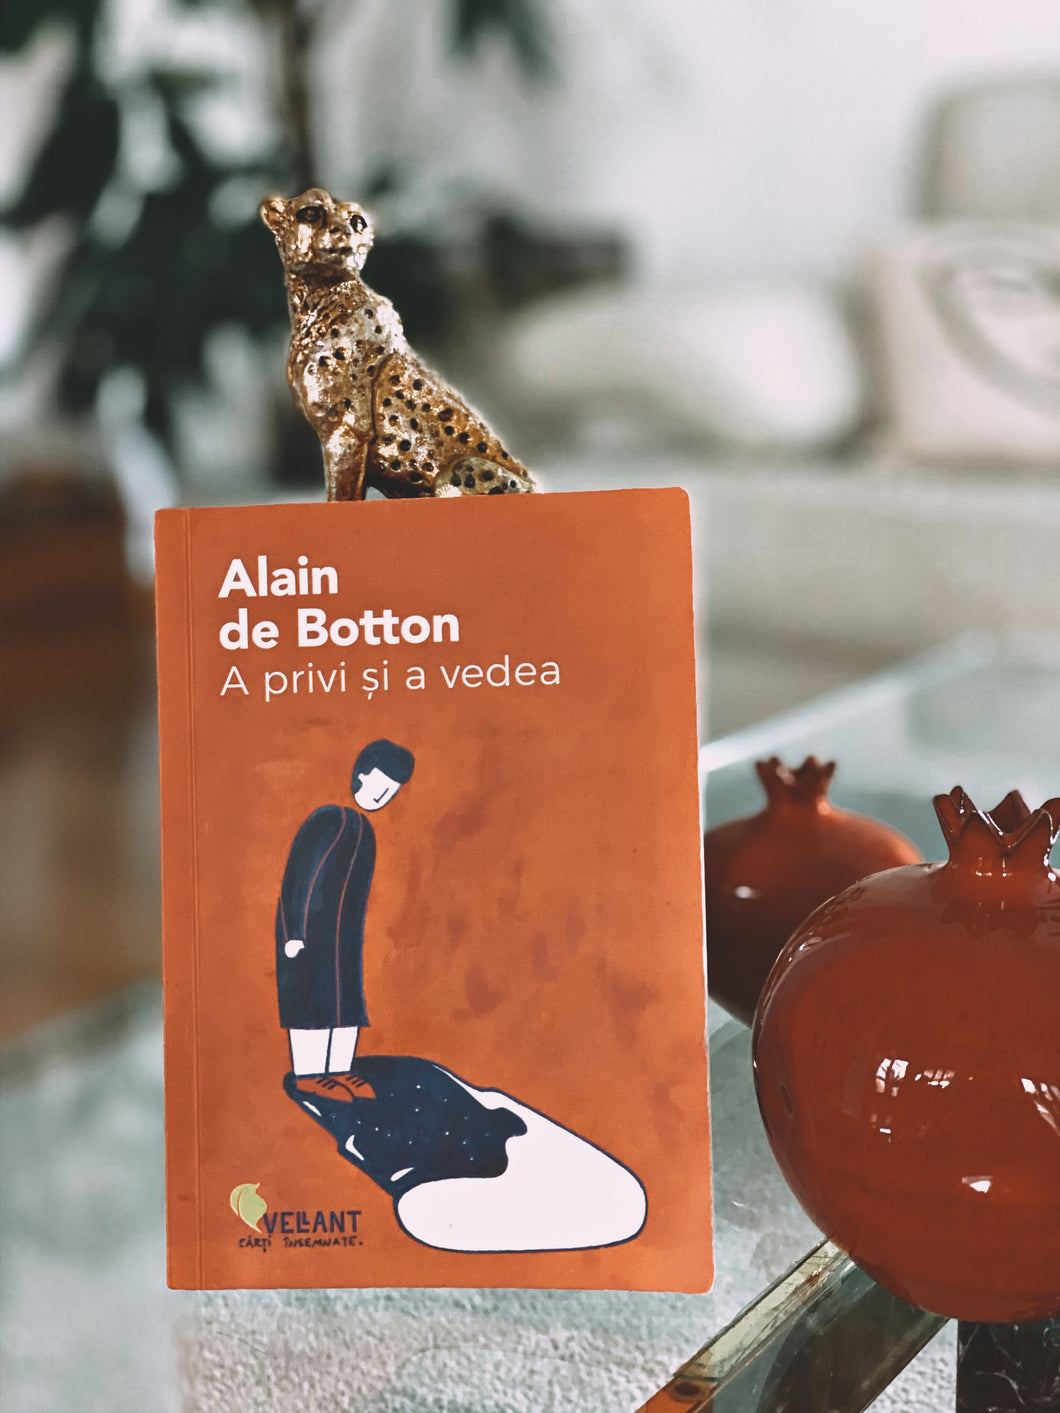 A privi și a vedea, Alain de Botton